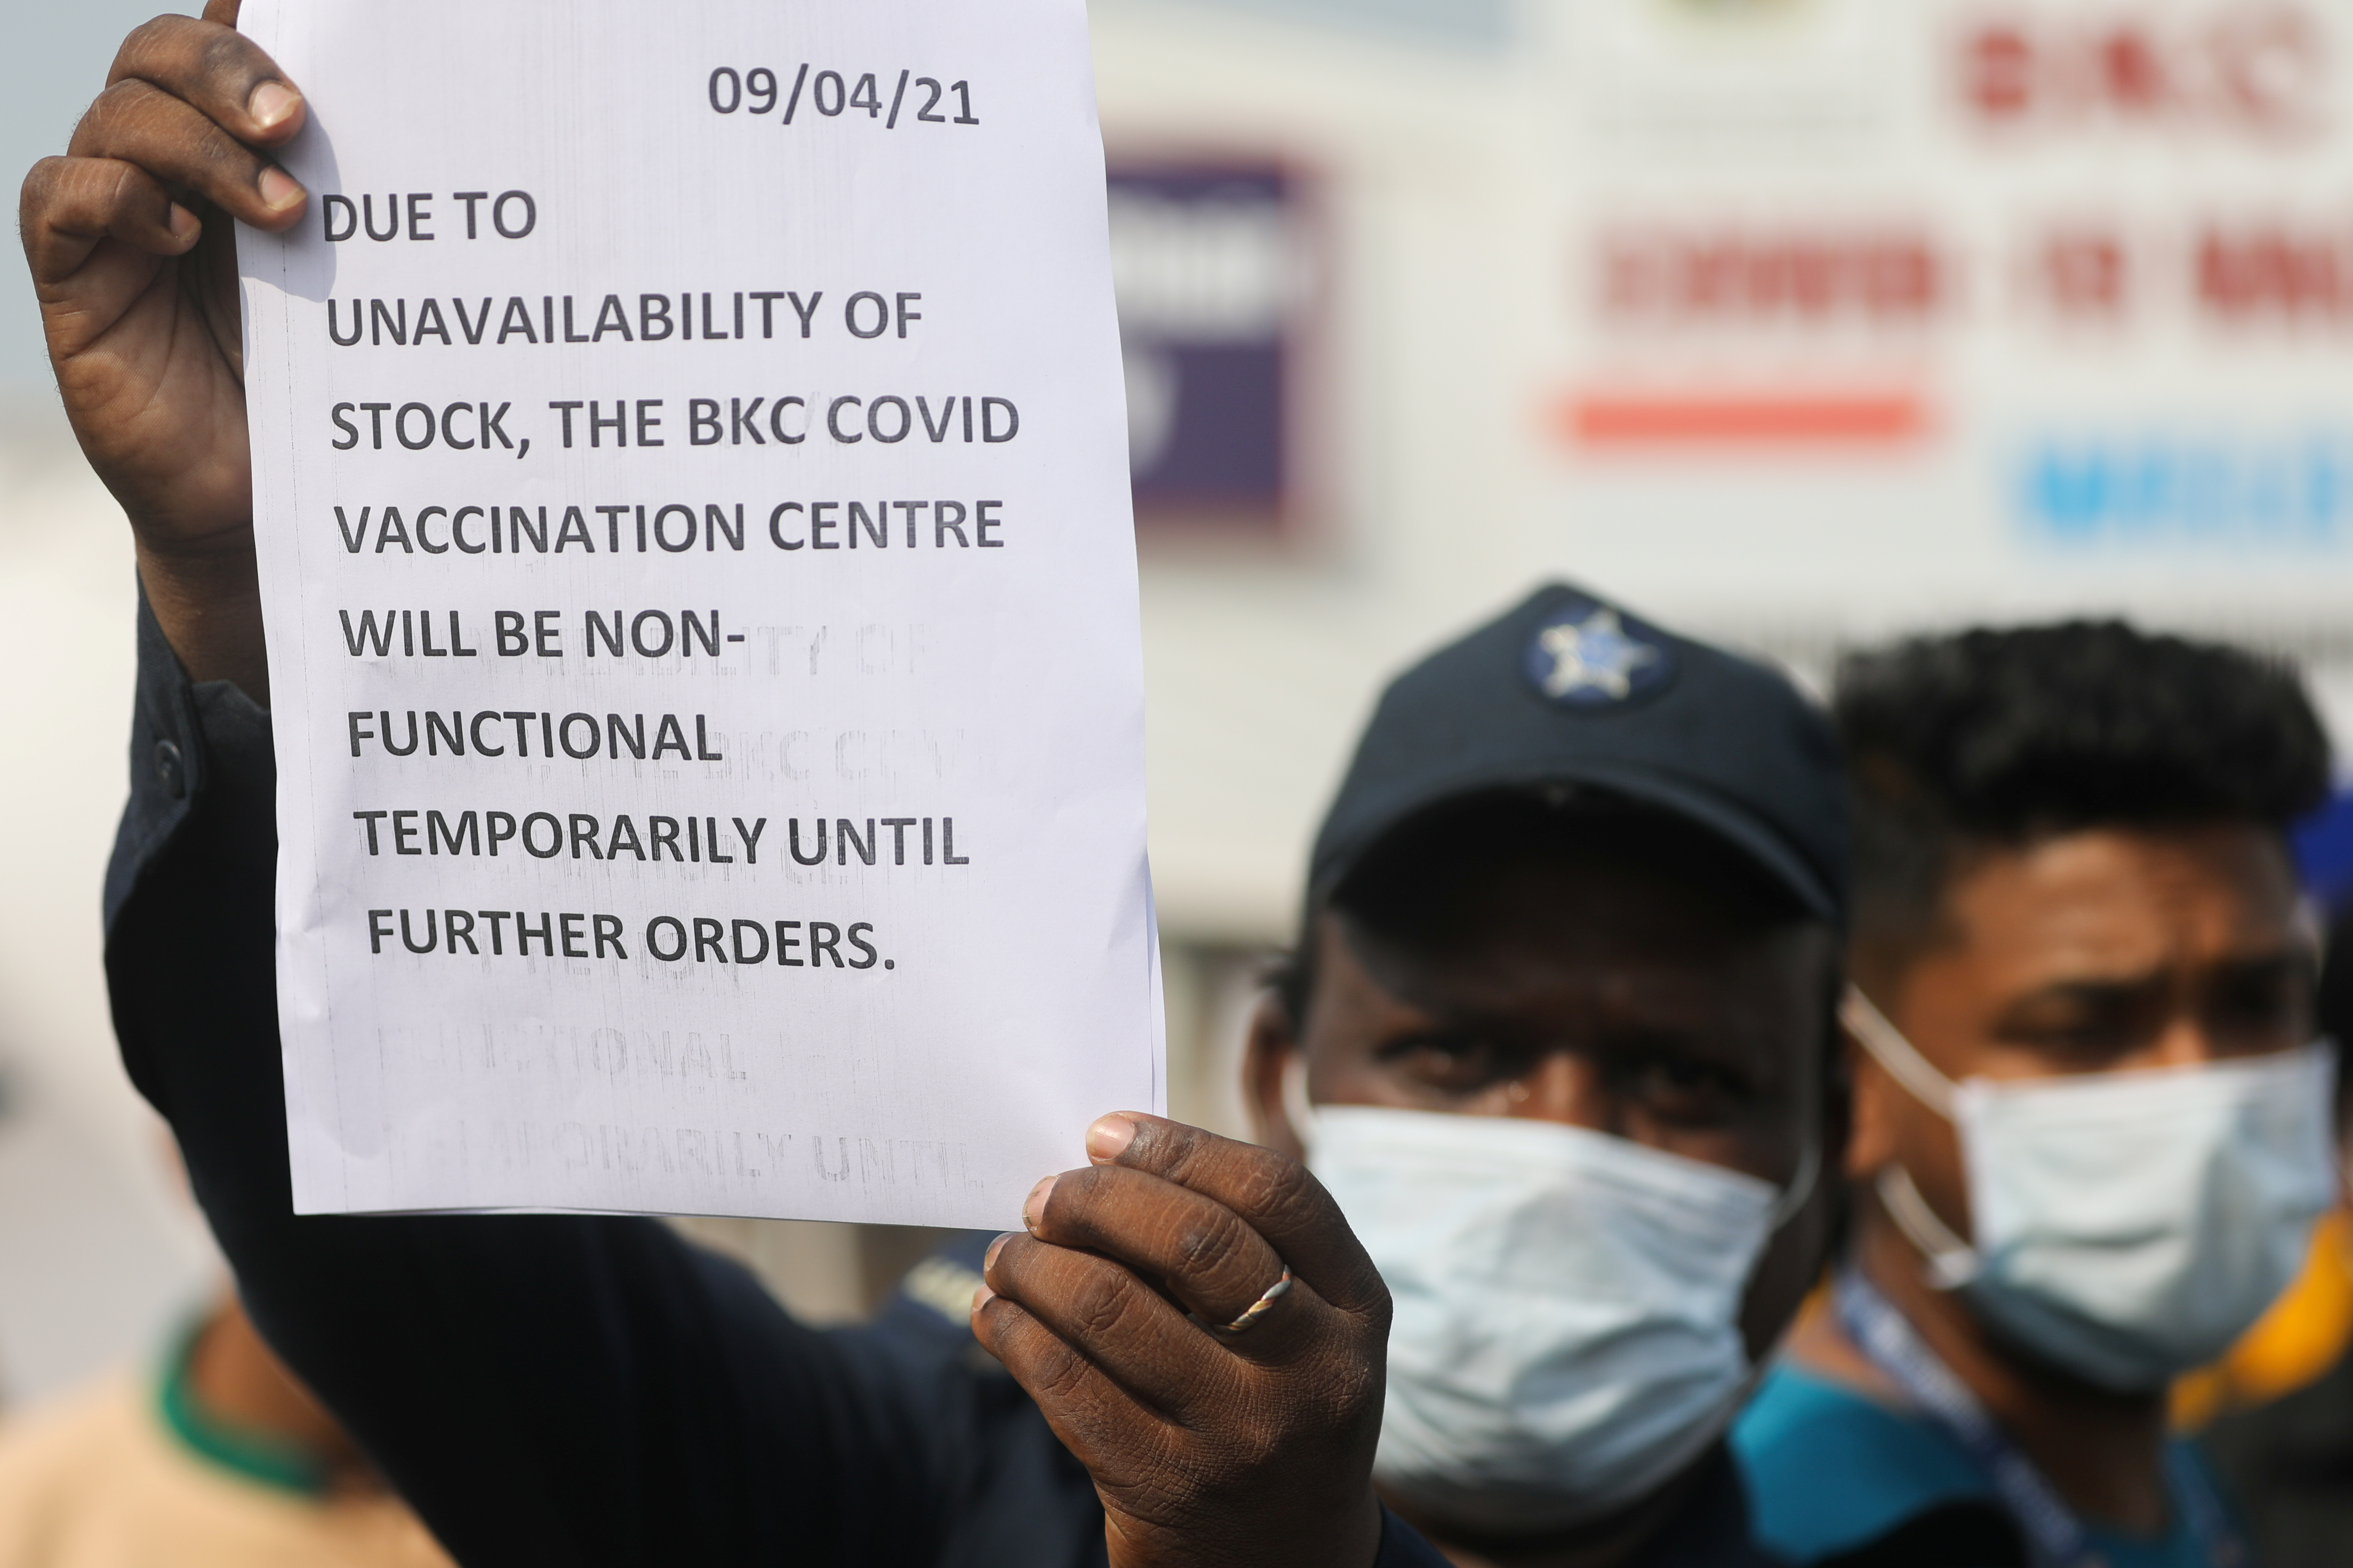 A guard holds up a notice to inform people about the shortage of coronavirus disease (COVID-19) vaccine supplies at a vaccination centre, in Mumbai, India, April 9, 2021. REUTERS/Francis Mascarenhas